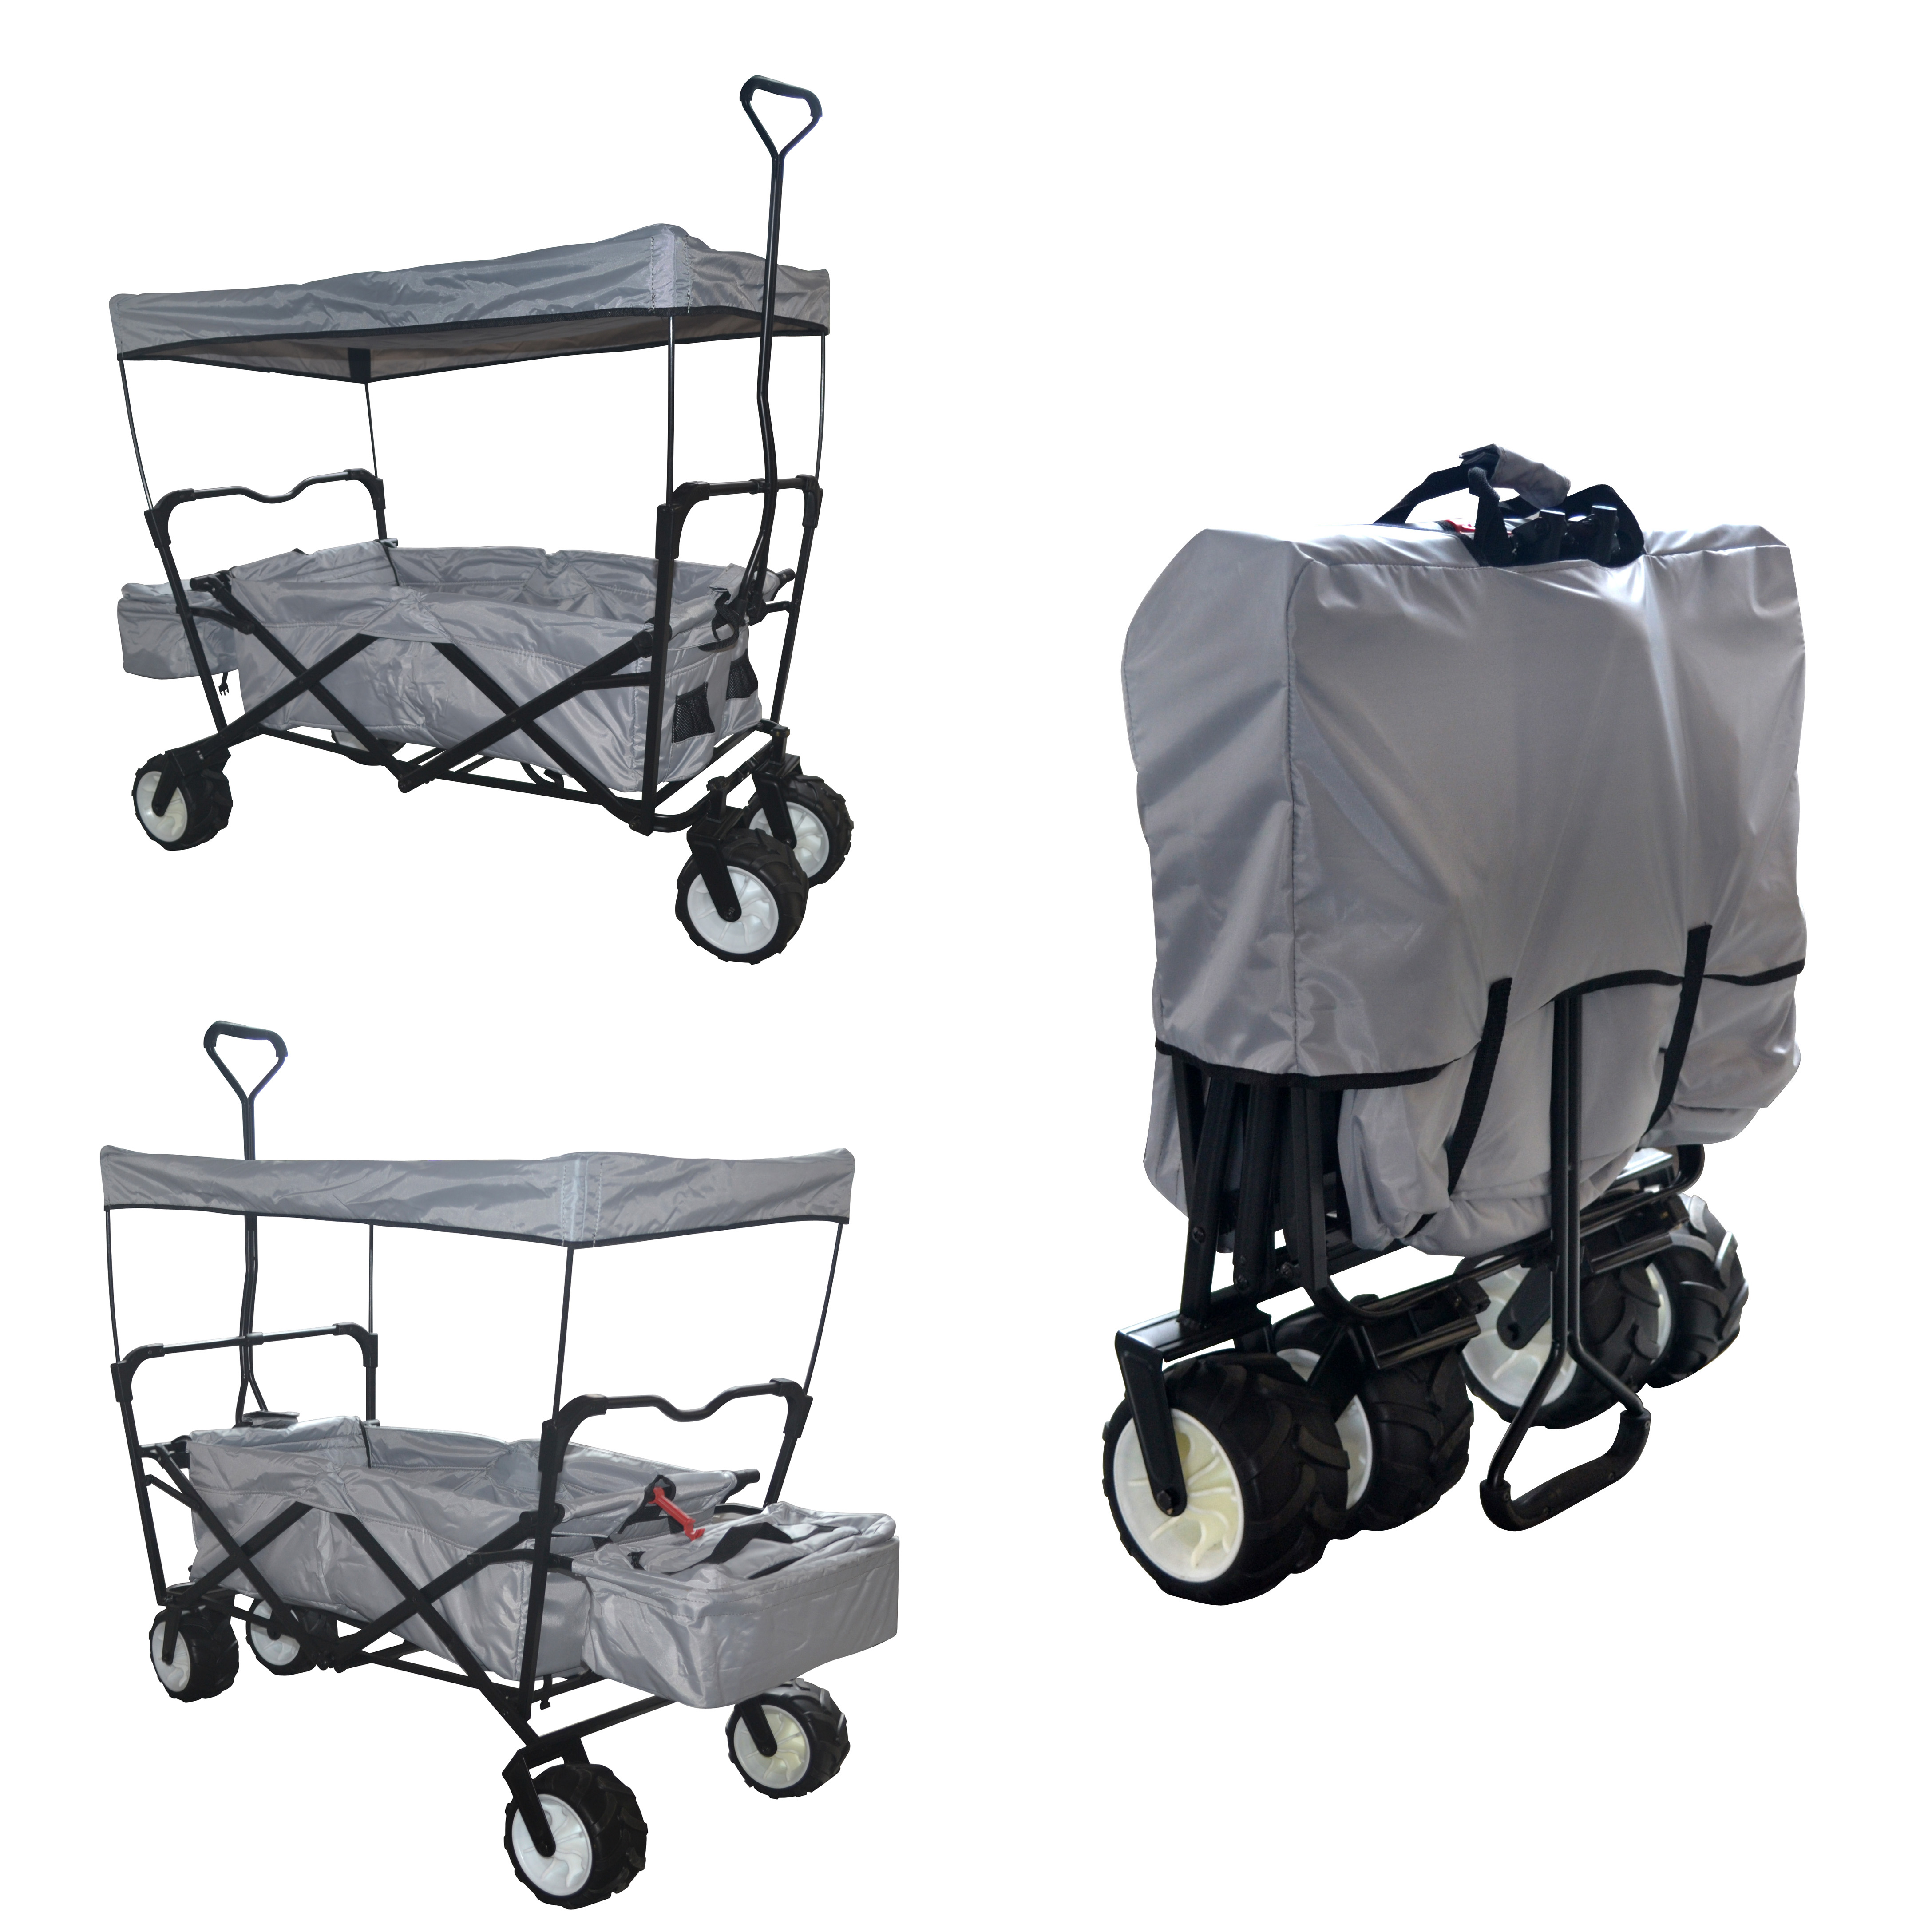 GREY OUTDOOR FOLDING WAGON CANOPY GARDEN UTILITY TRAVEL CART LARGE BEACH TIRES